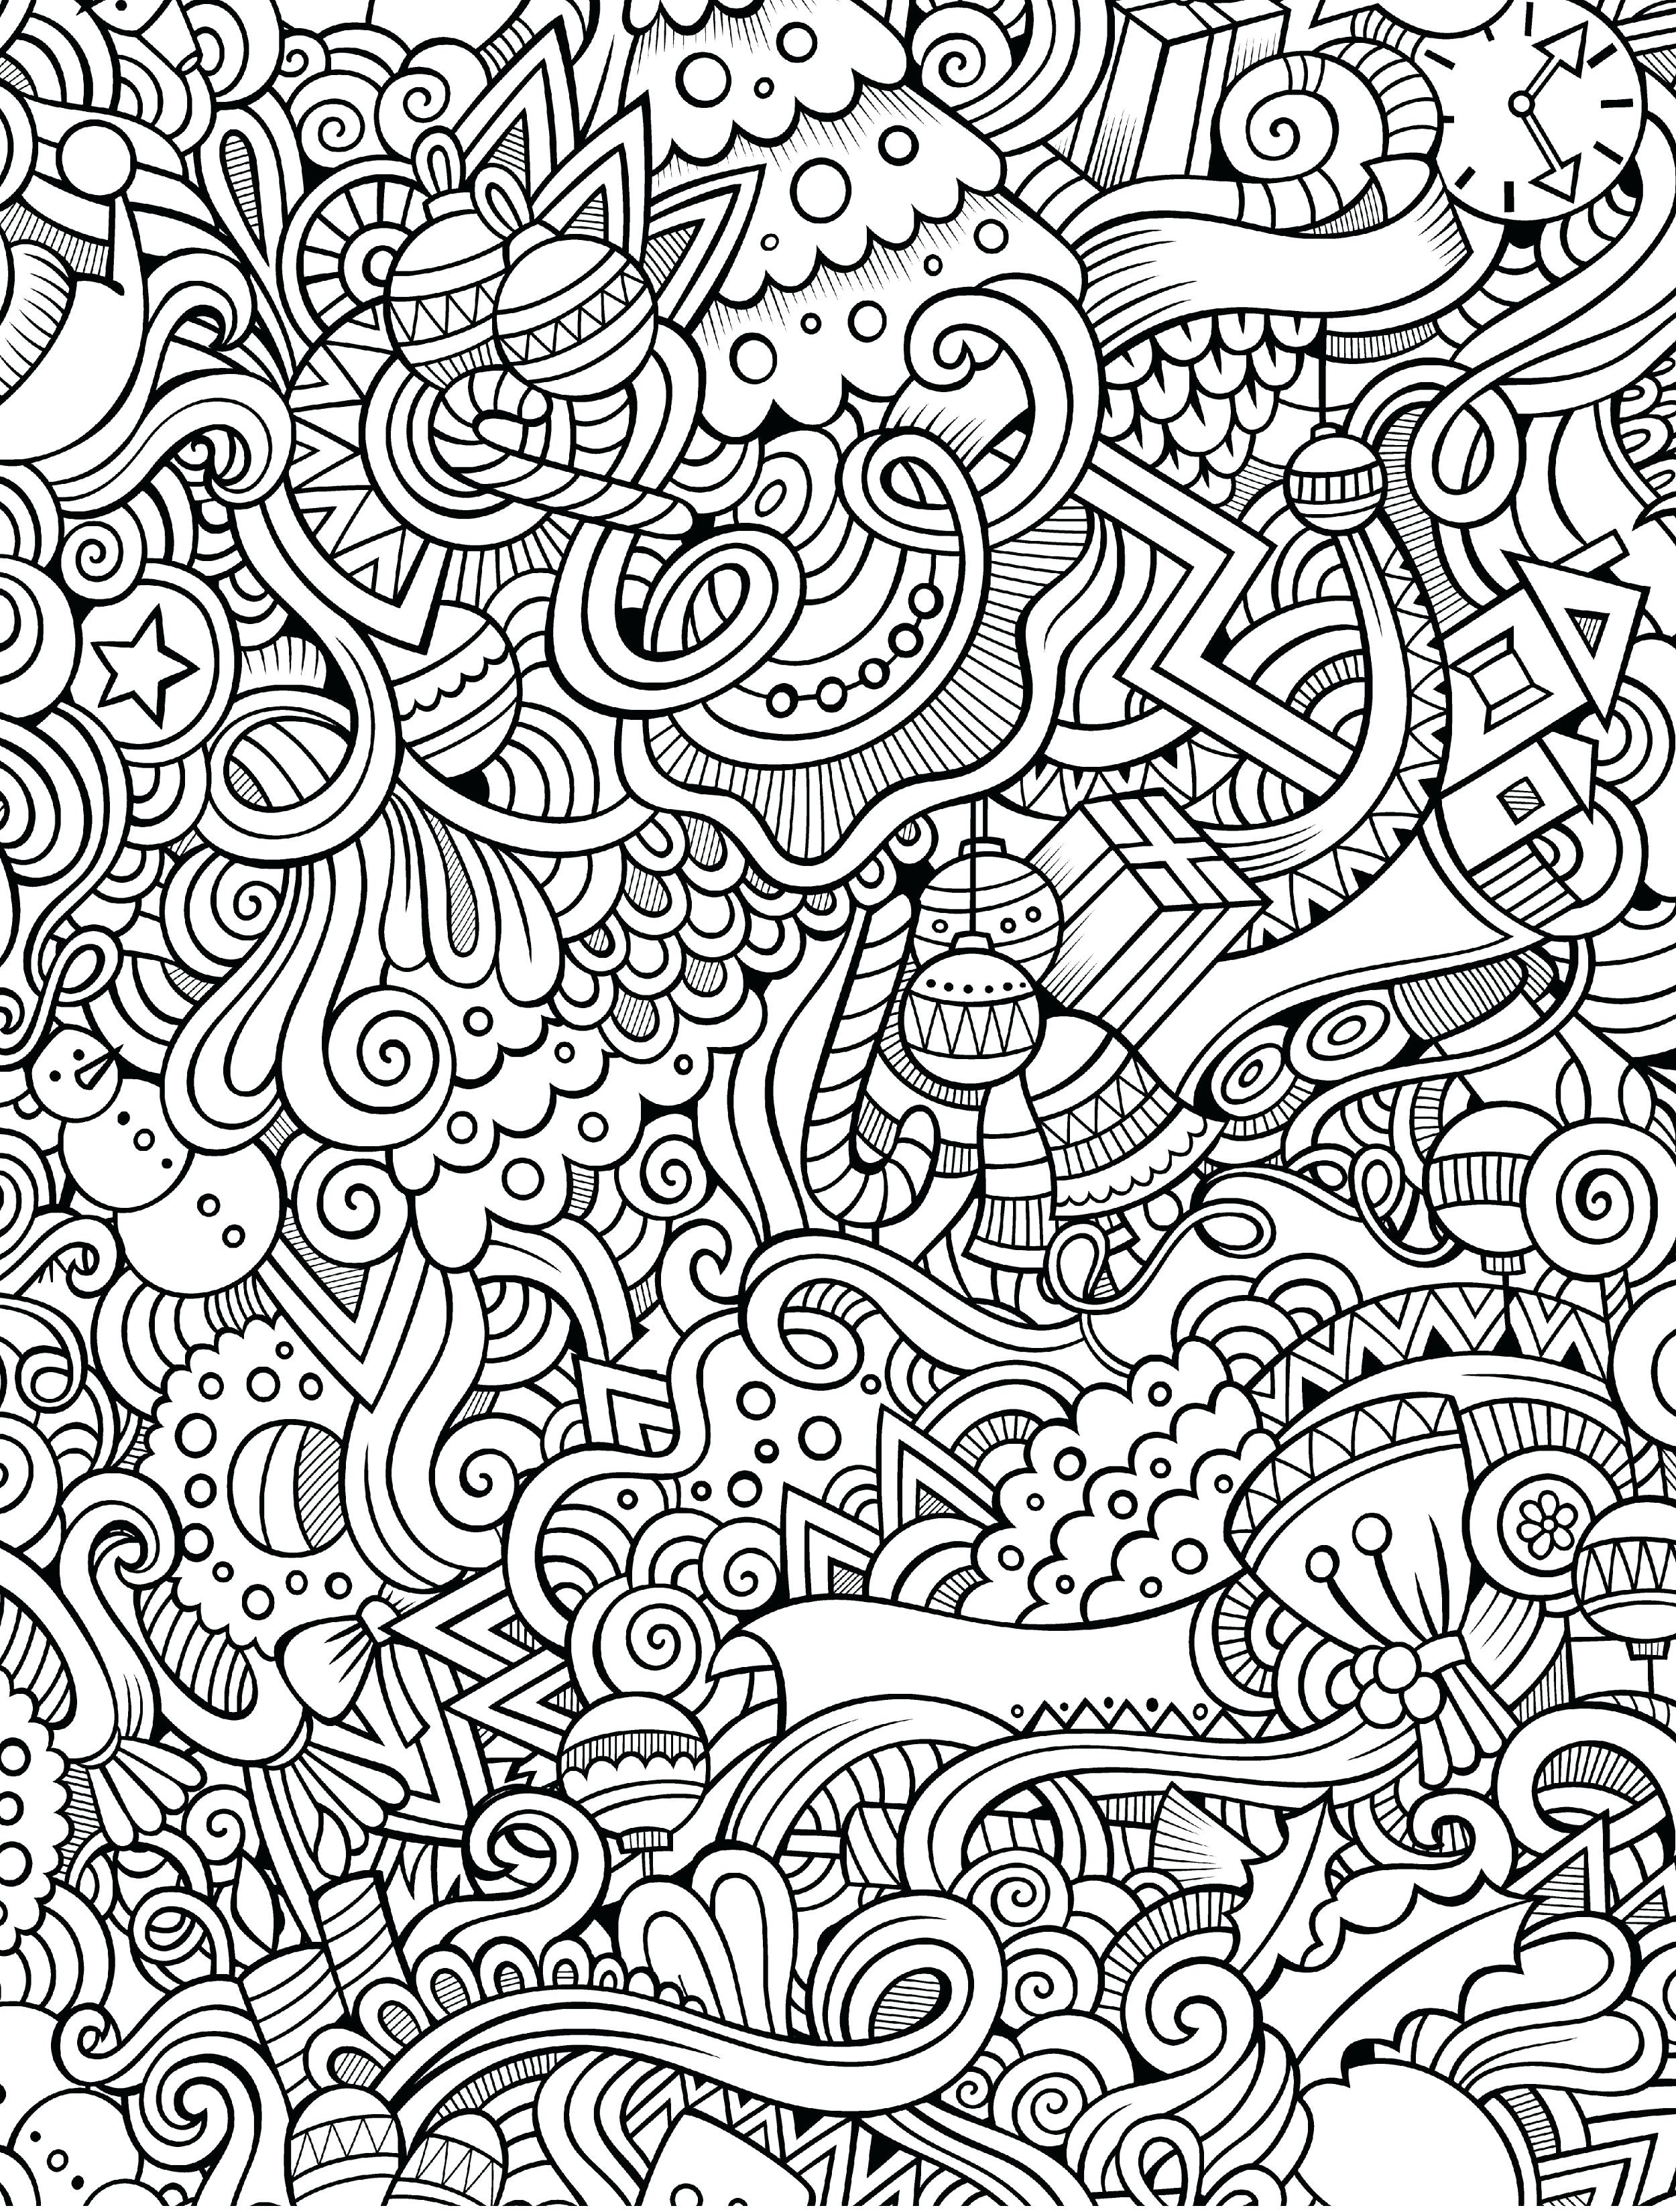 Coloring Pages for Dementia Patients Download Free